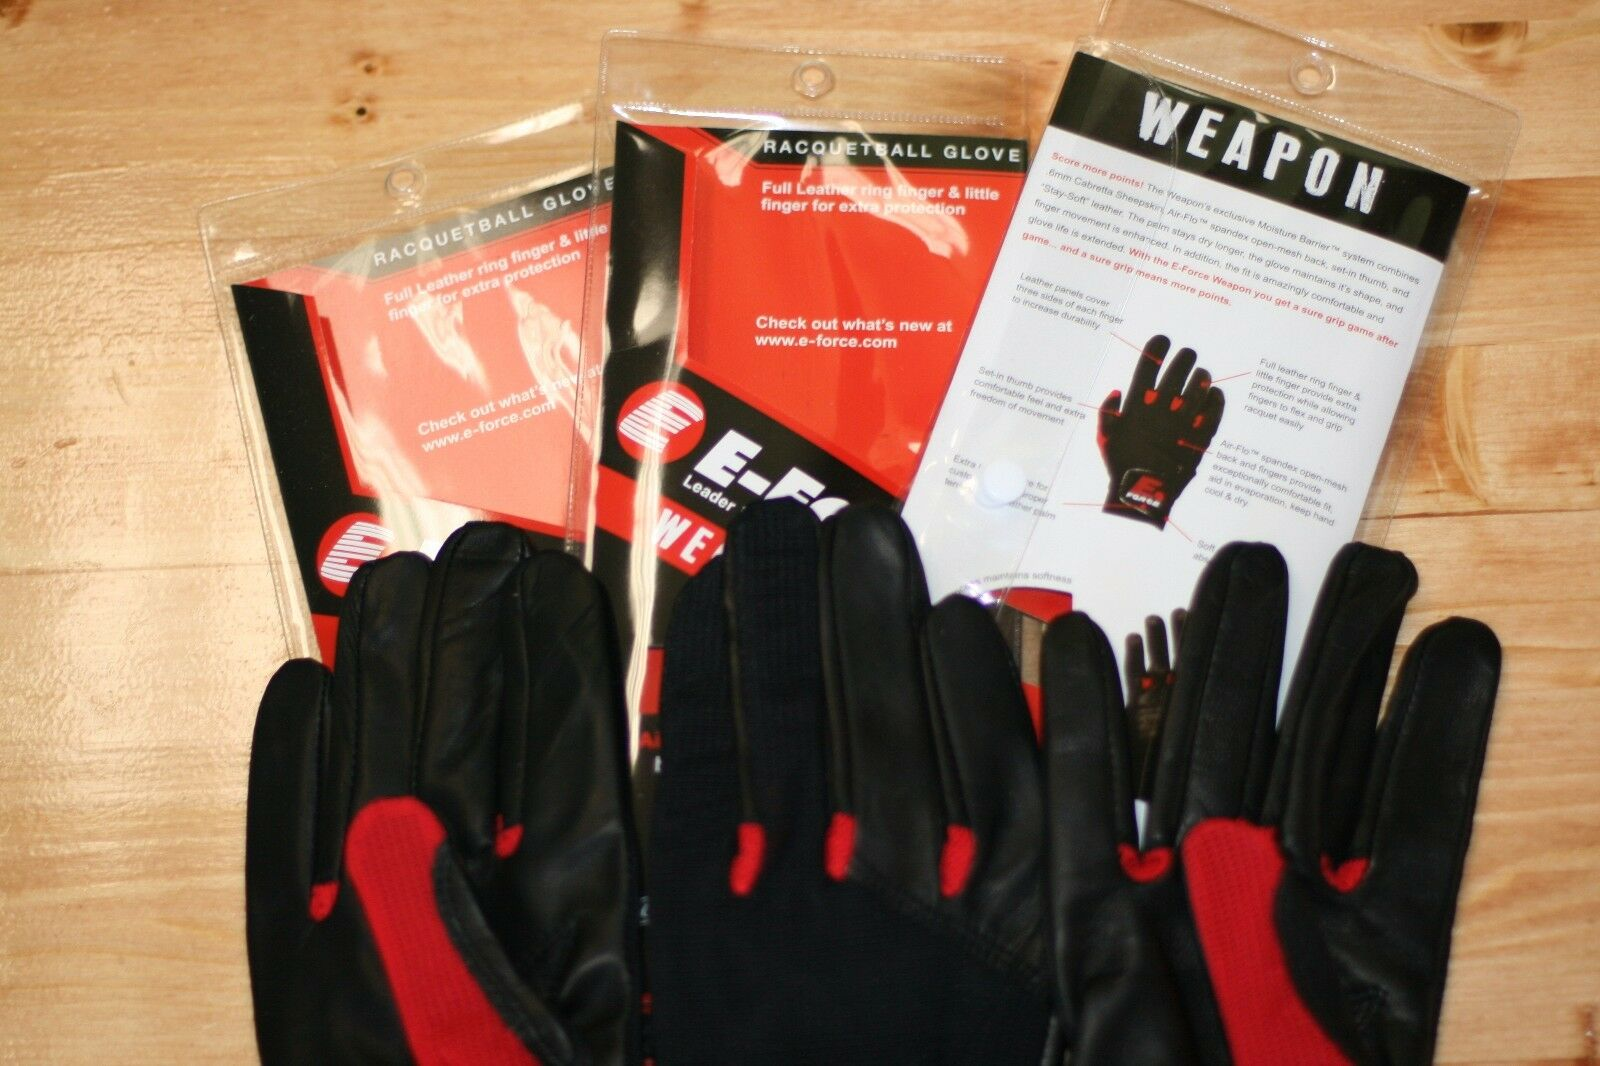 E-Force EFORCE e Force Racquetball Guantes Guantes Guantes arma Color Rojo 3-Guante Mano Derecha S a1dca8